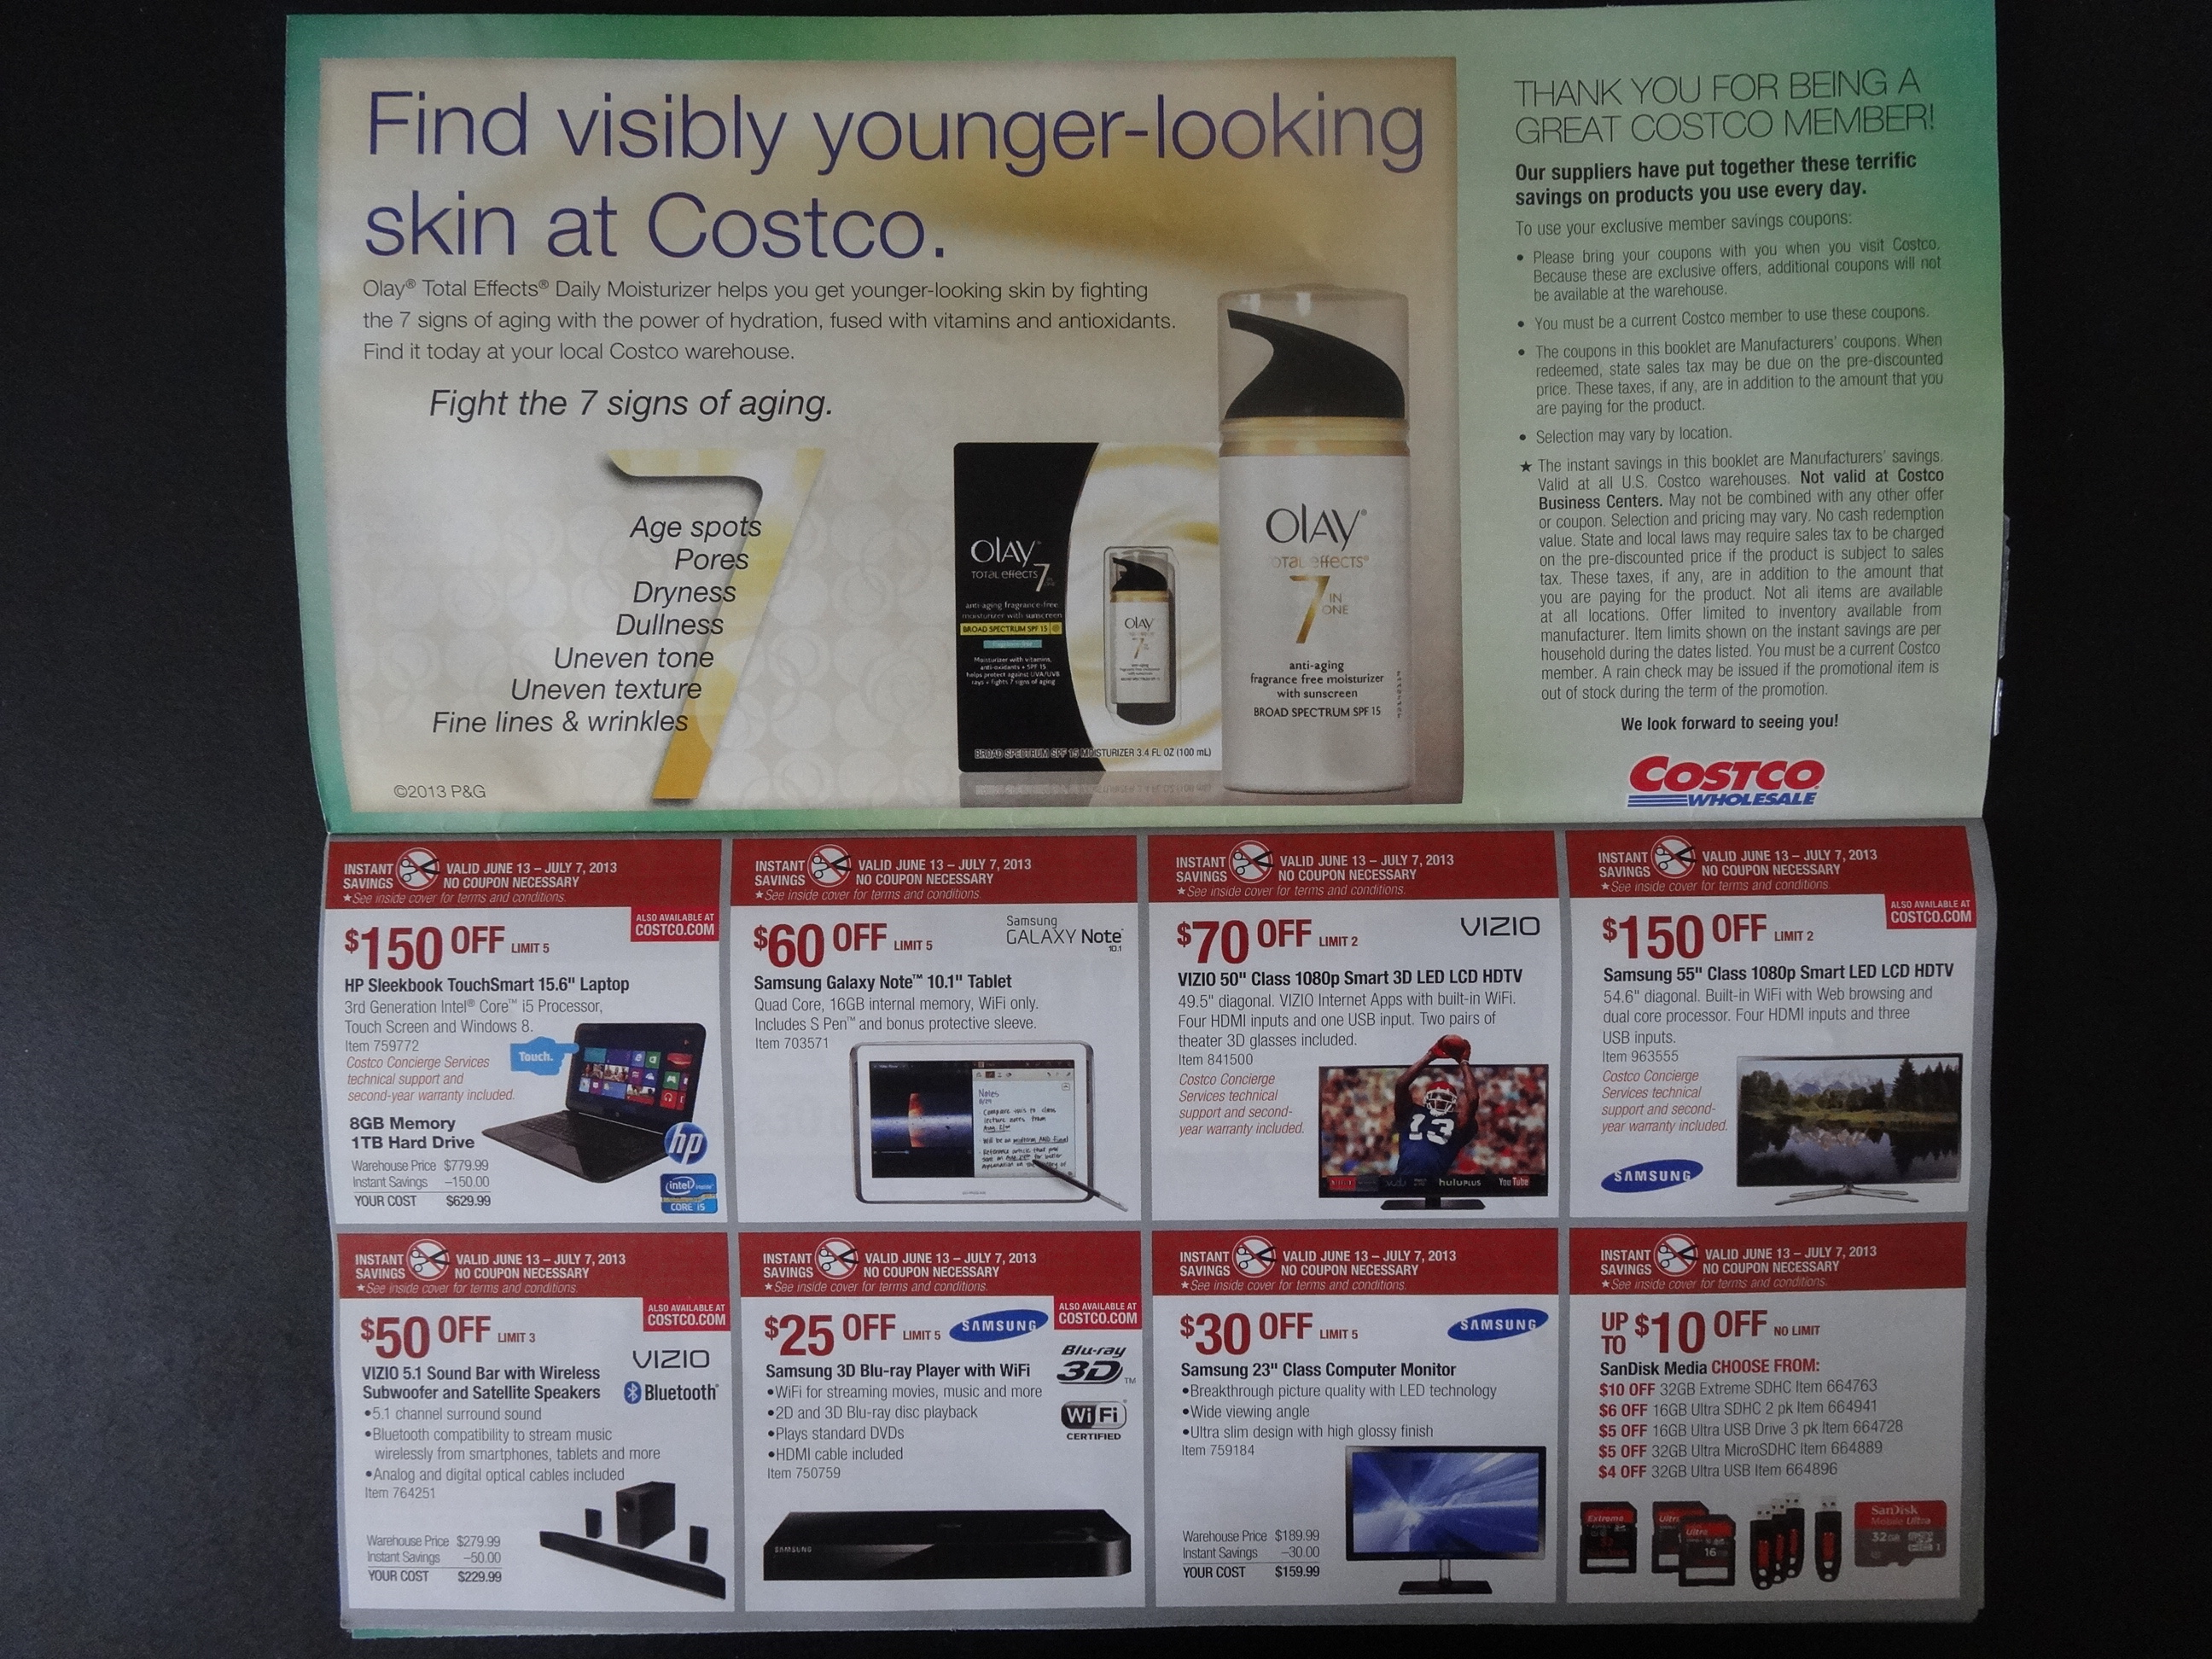 Costco June 2013 Coupon Book 06 13 13 To 07 07 13